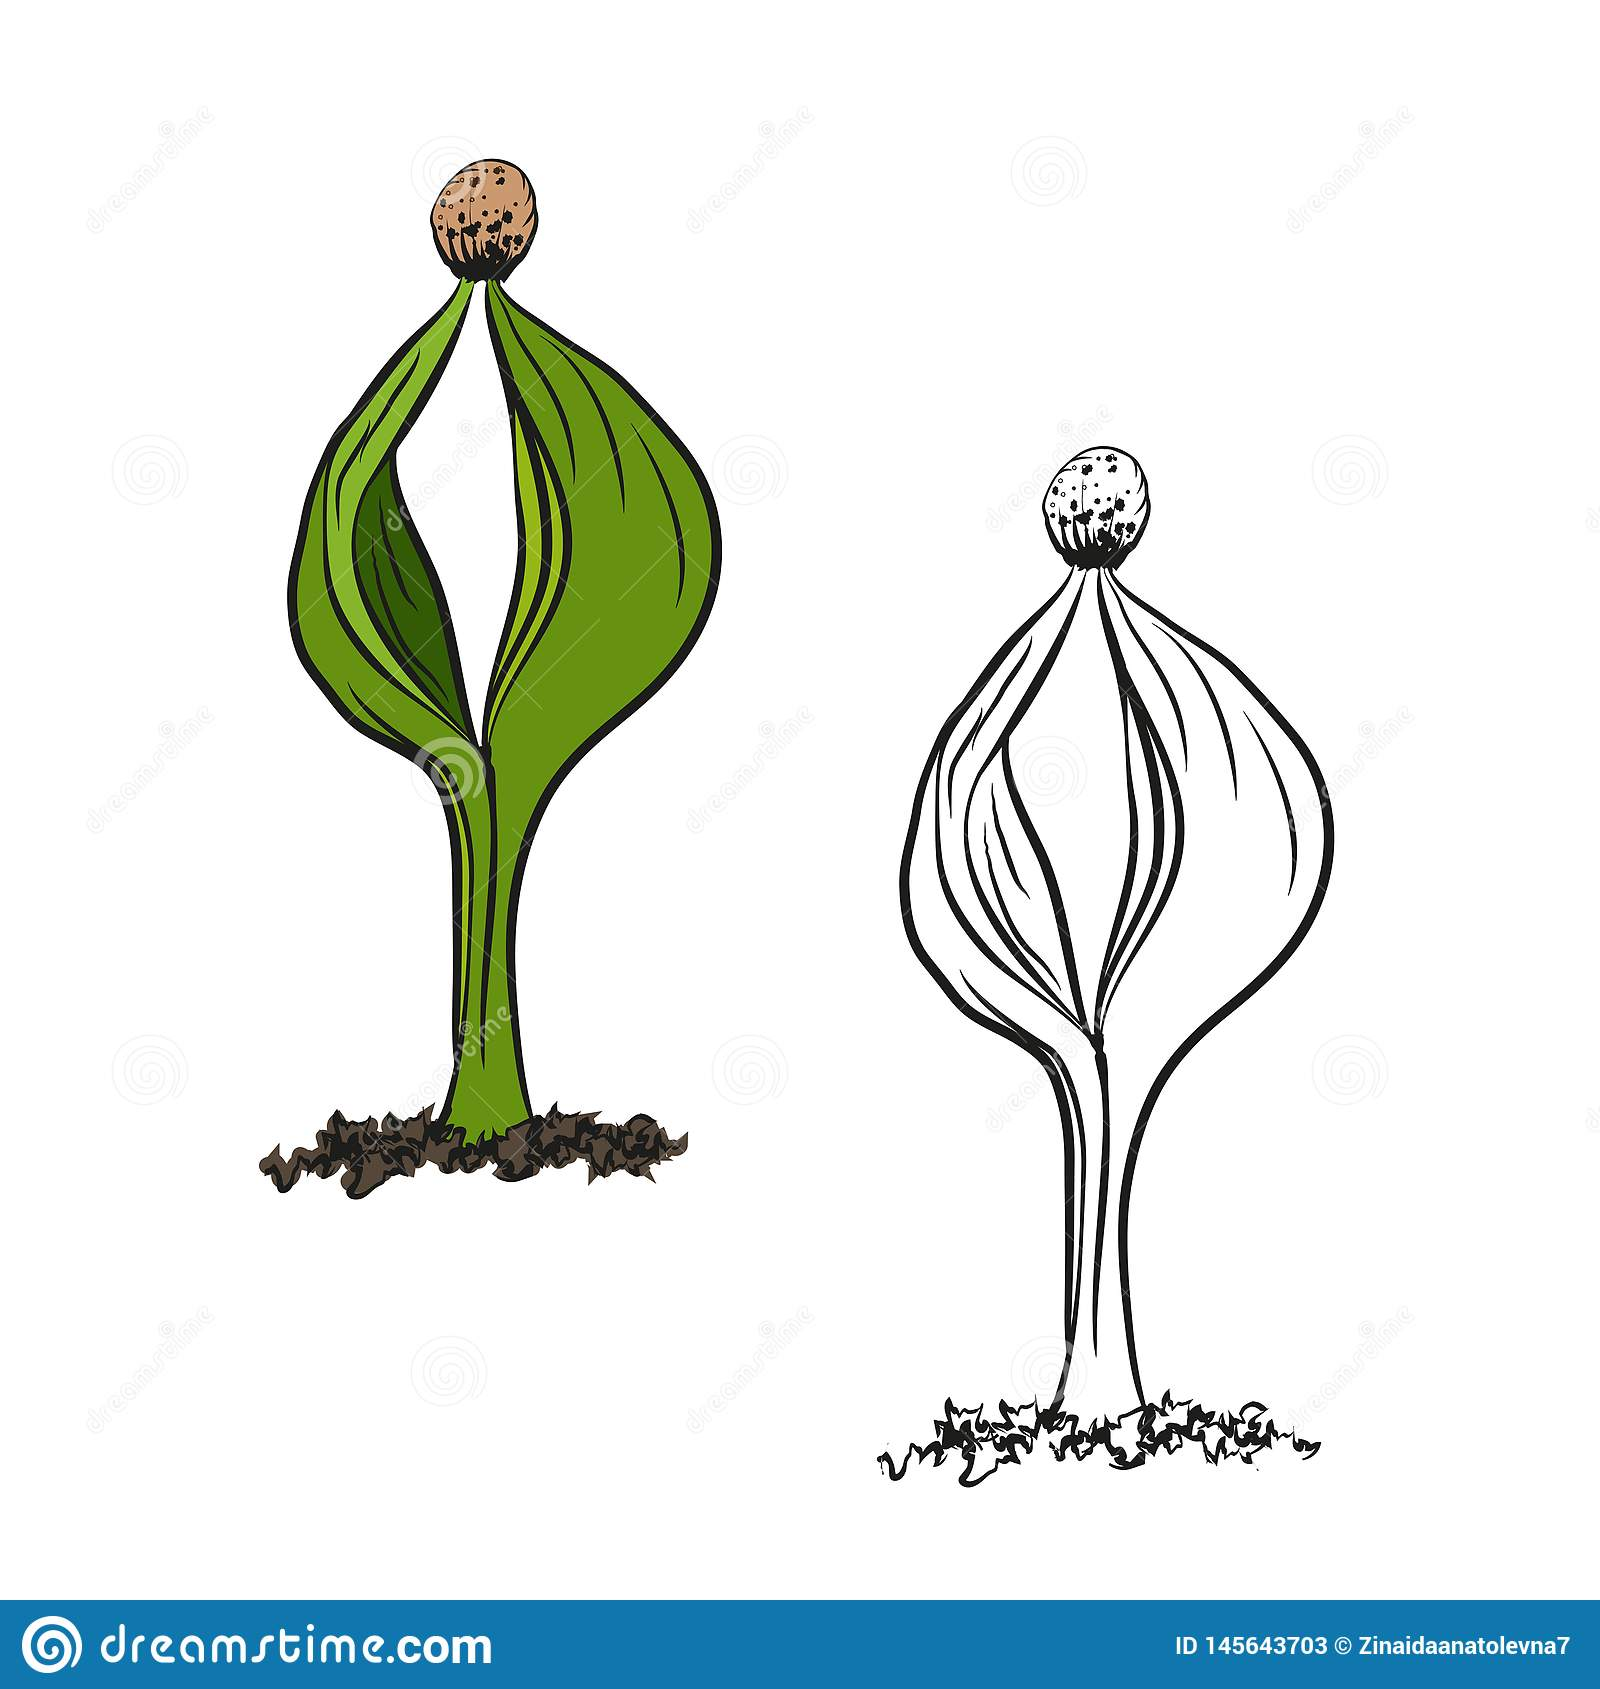 Illustration Of The Contour Of The Germination Of The